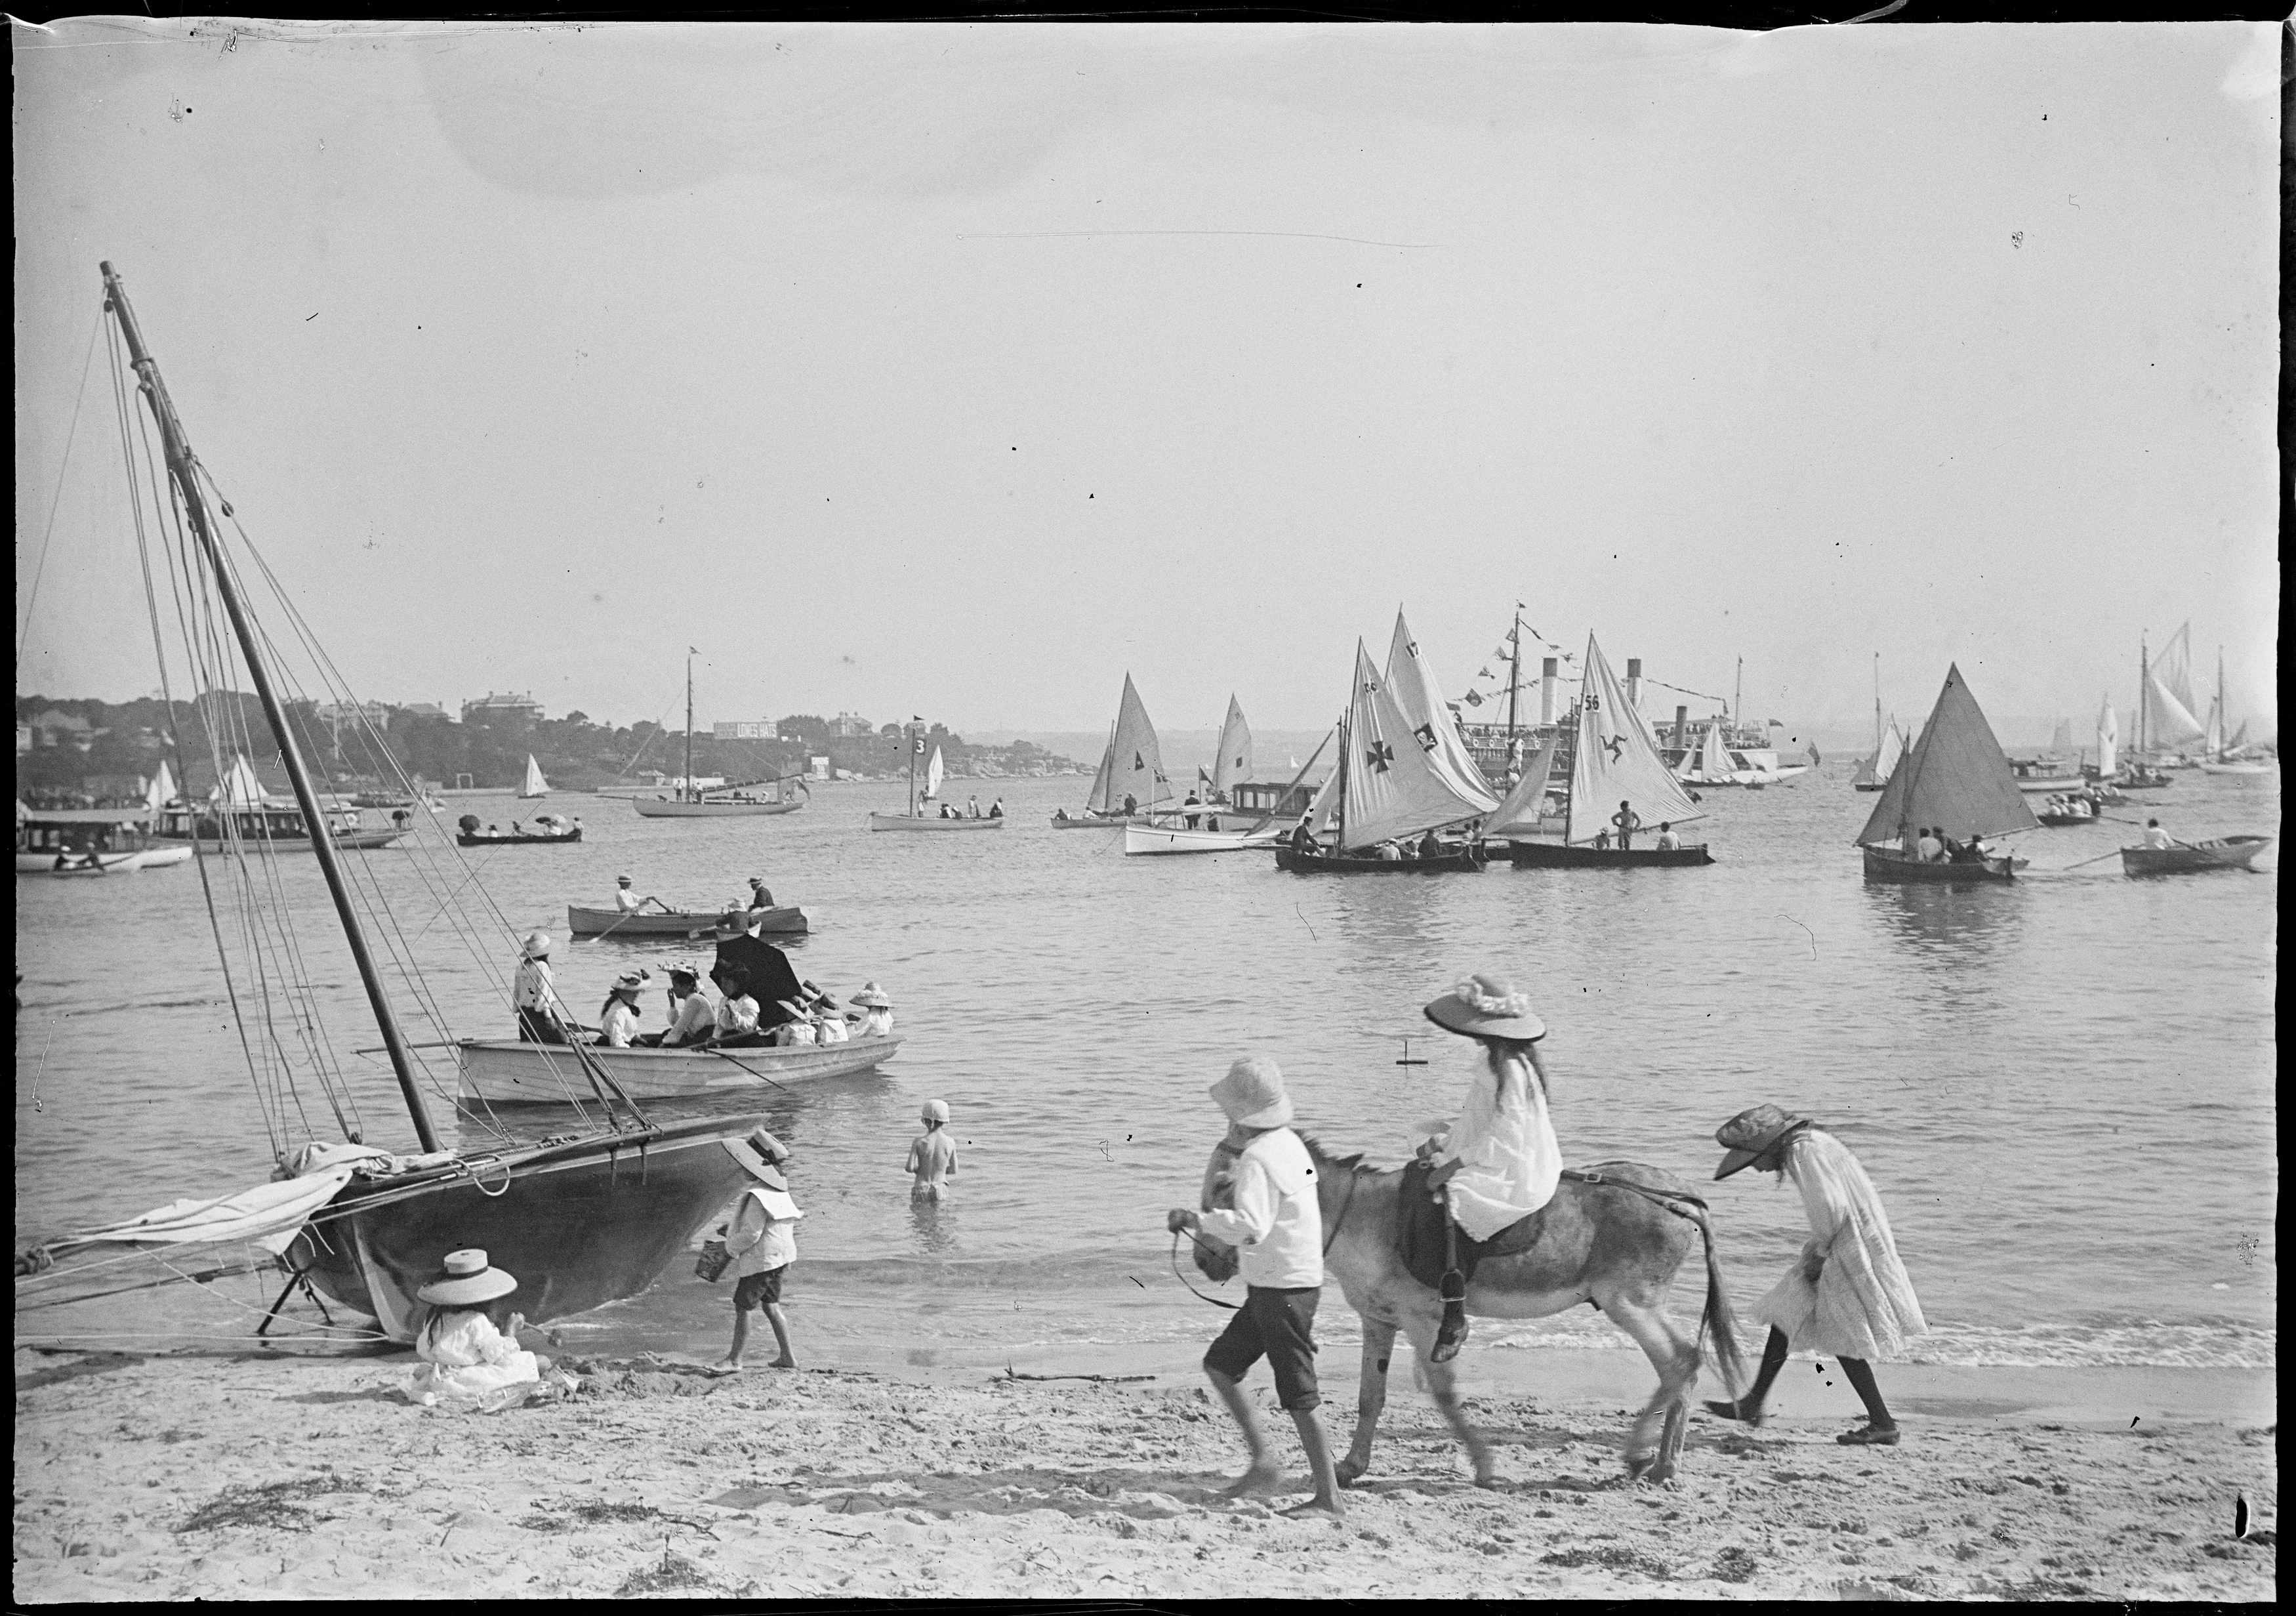 Donkey rides at Manly Cove, with children on sand and sail boats